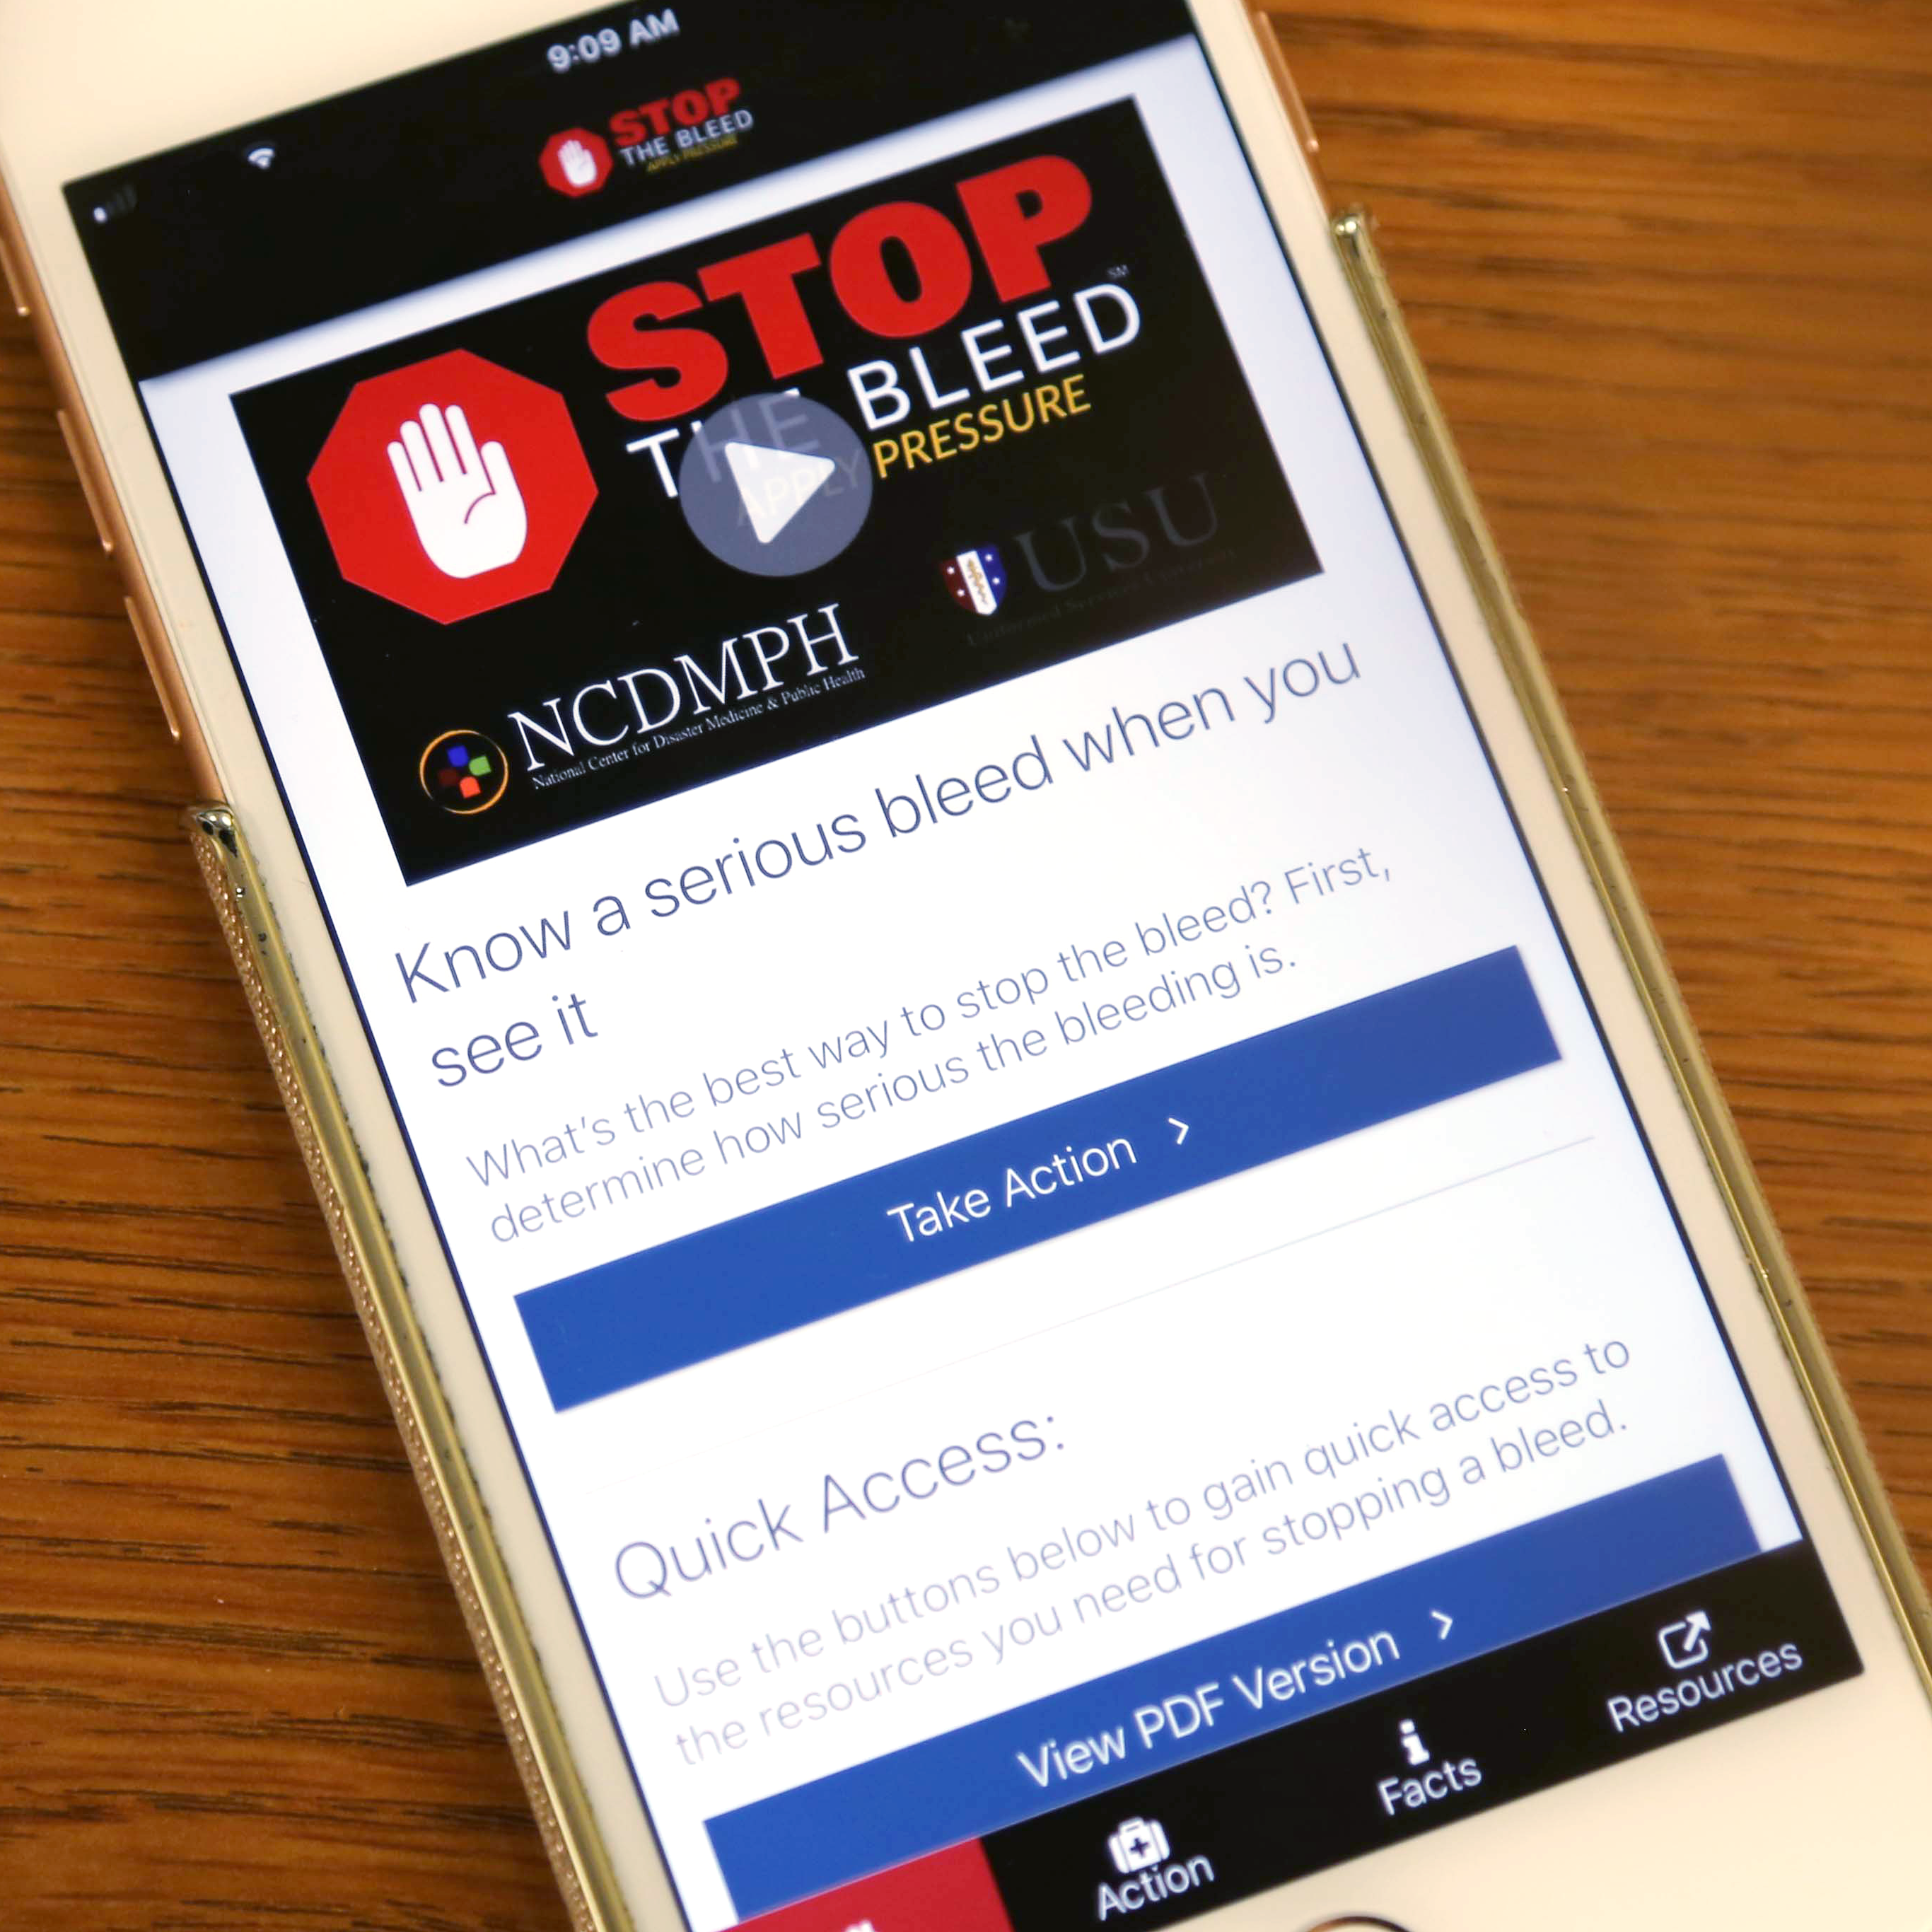 Photo of a cell phone with the Stop the Bleed app on the display.